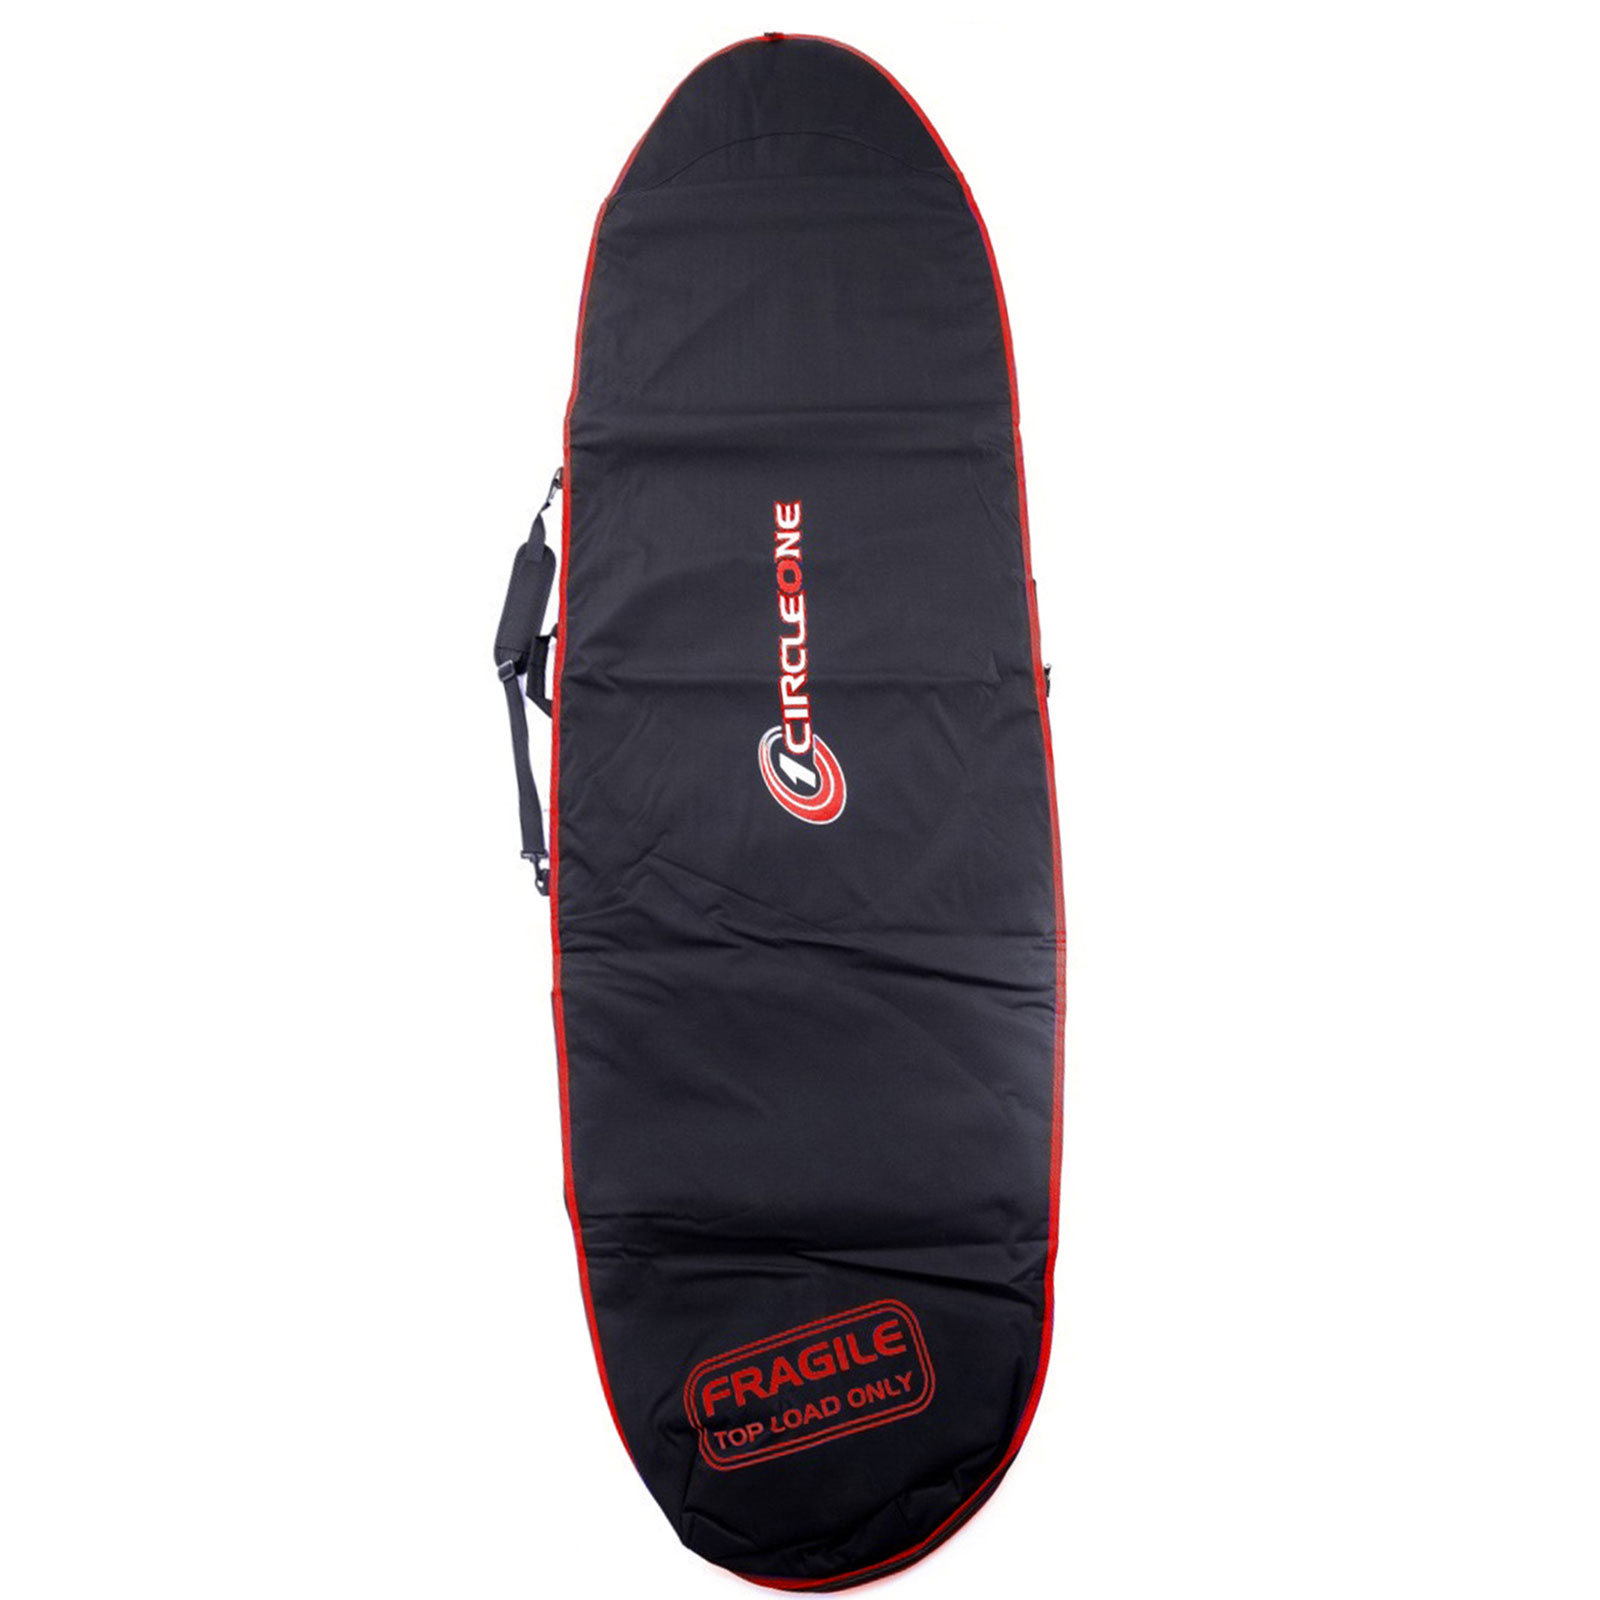 Stand Up Paddle (SUP) Board Travel Bag